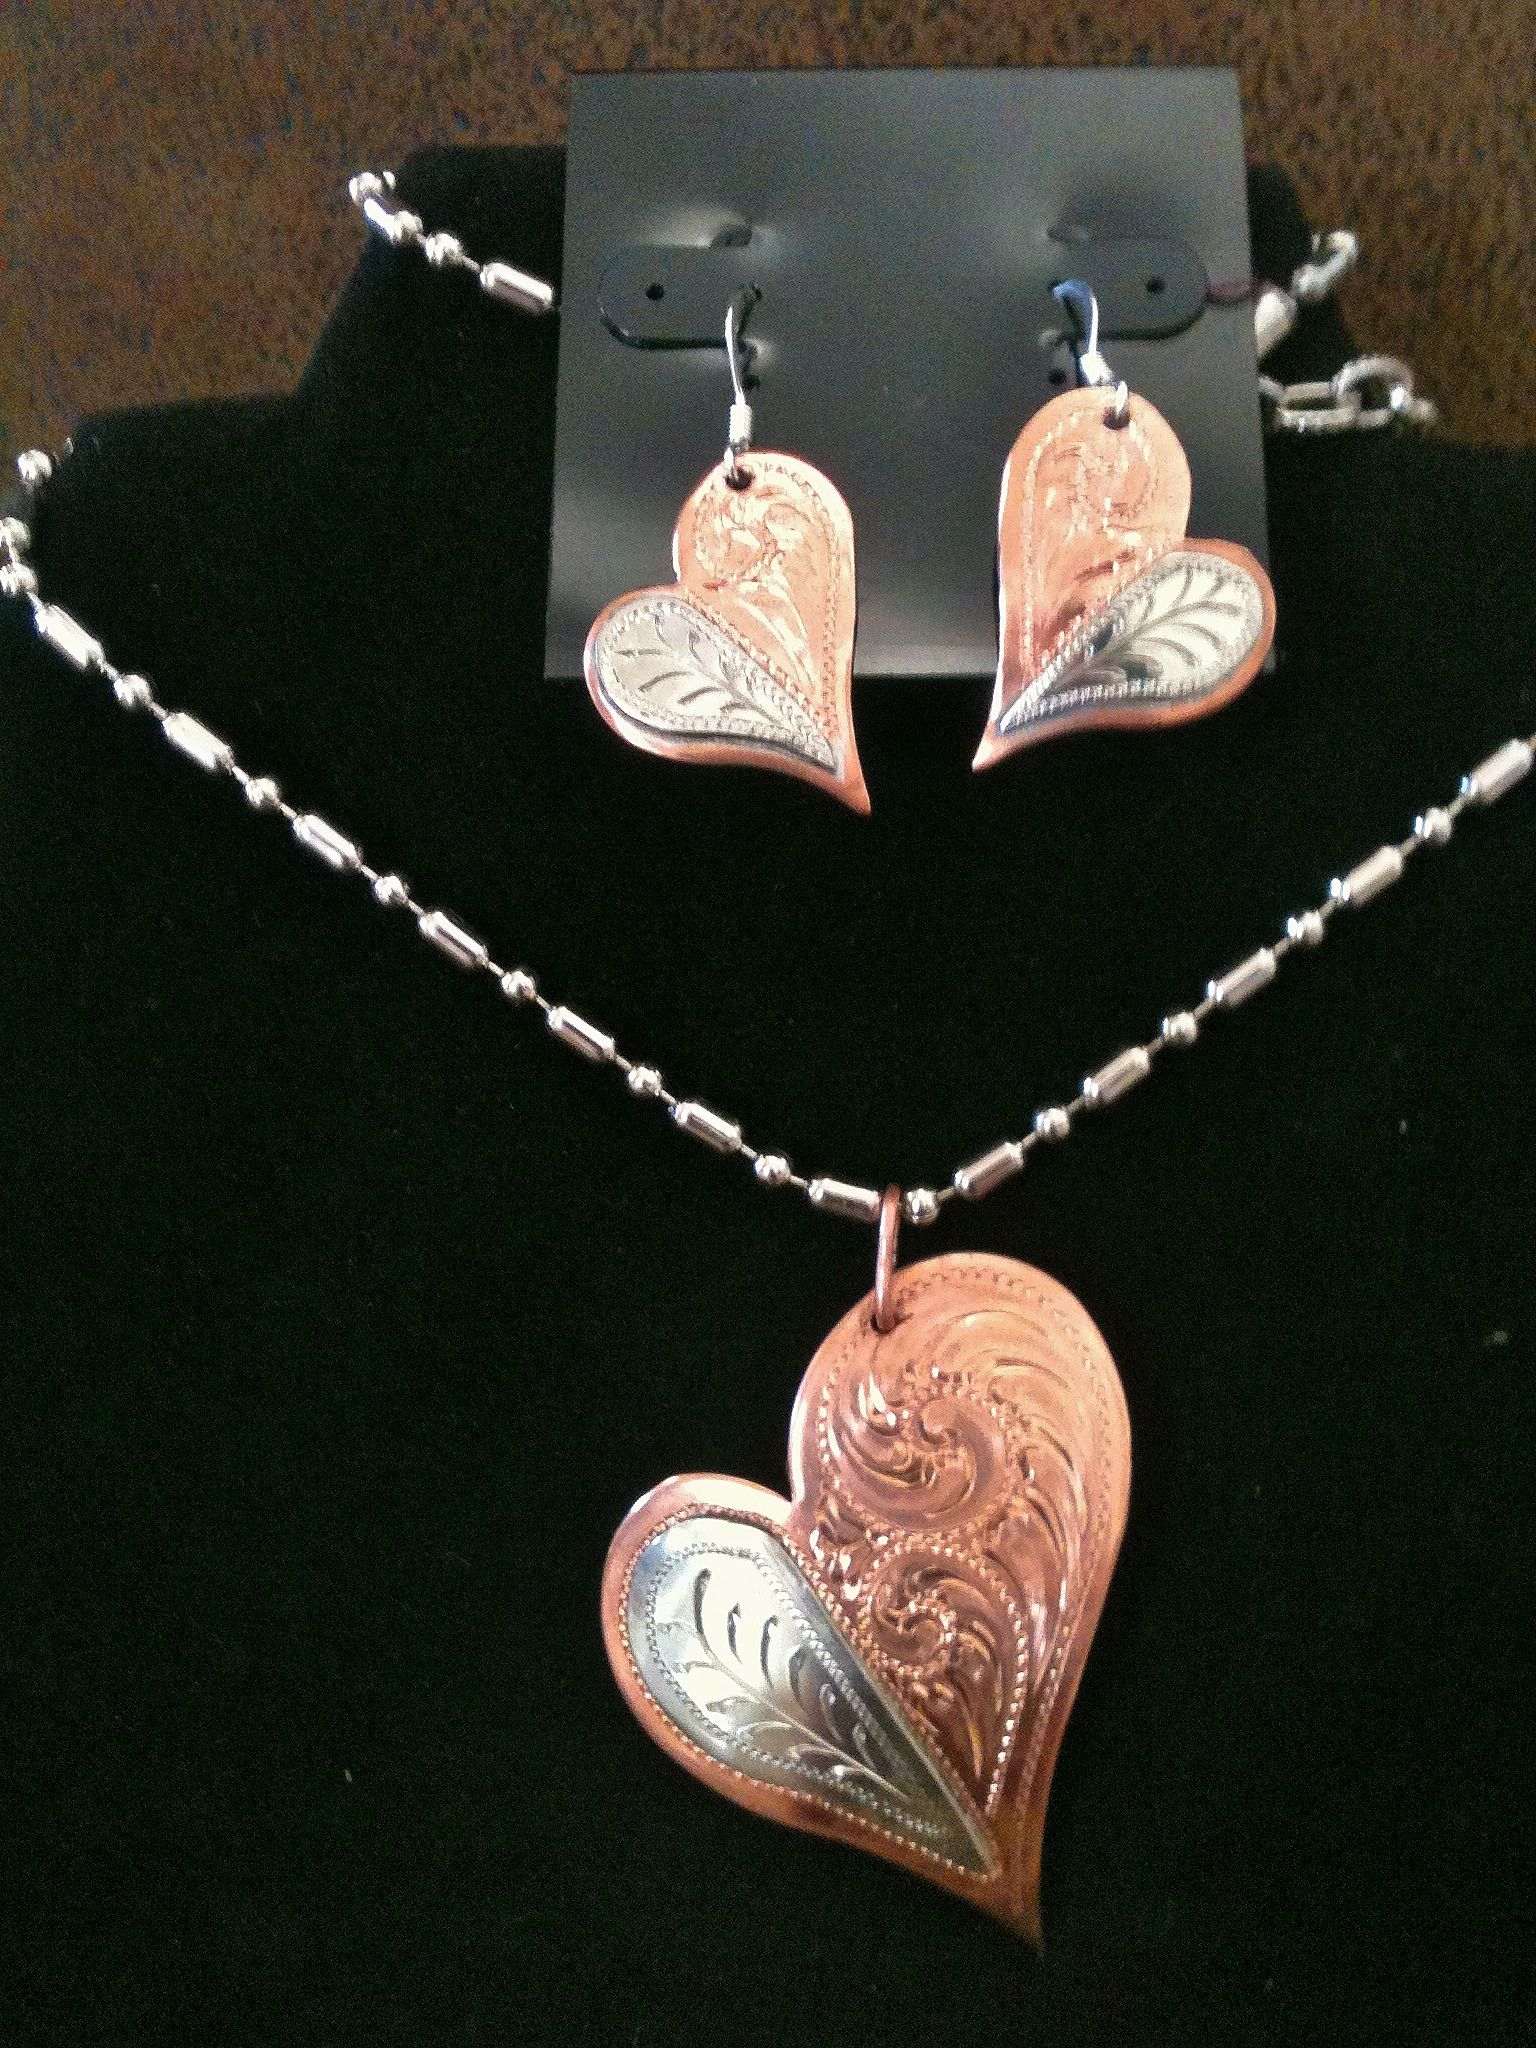 Western engraved hearts necklace and earring set jewelry